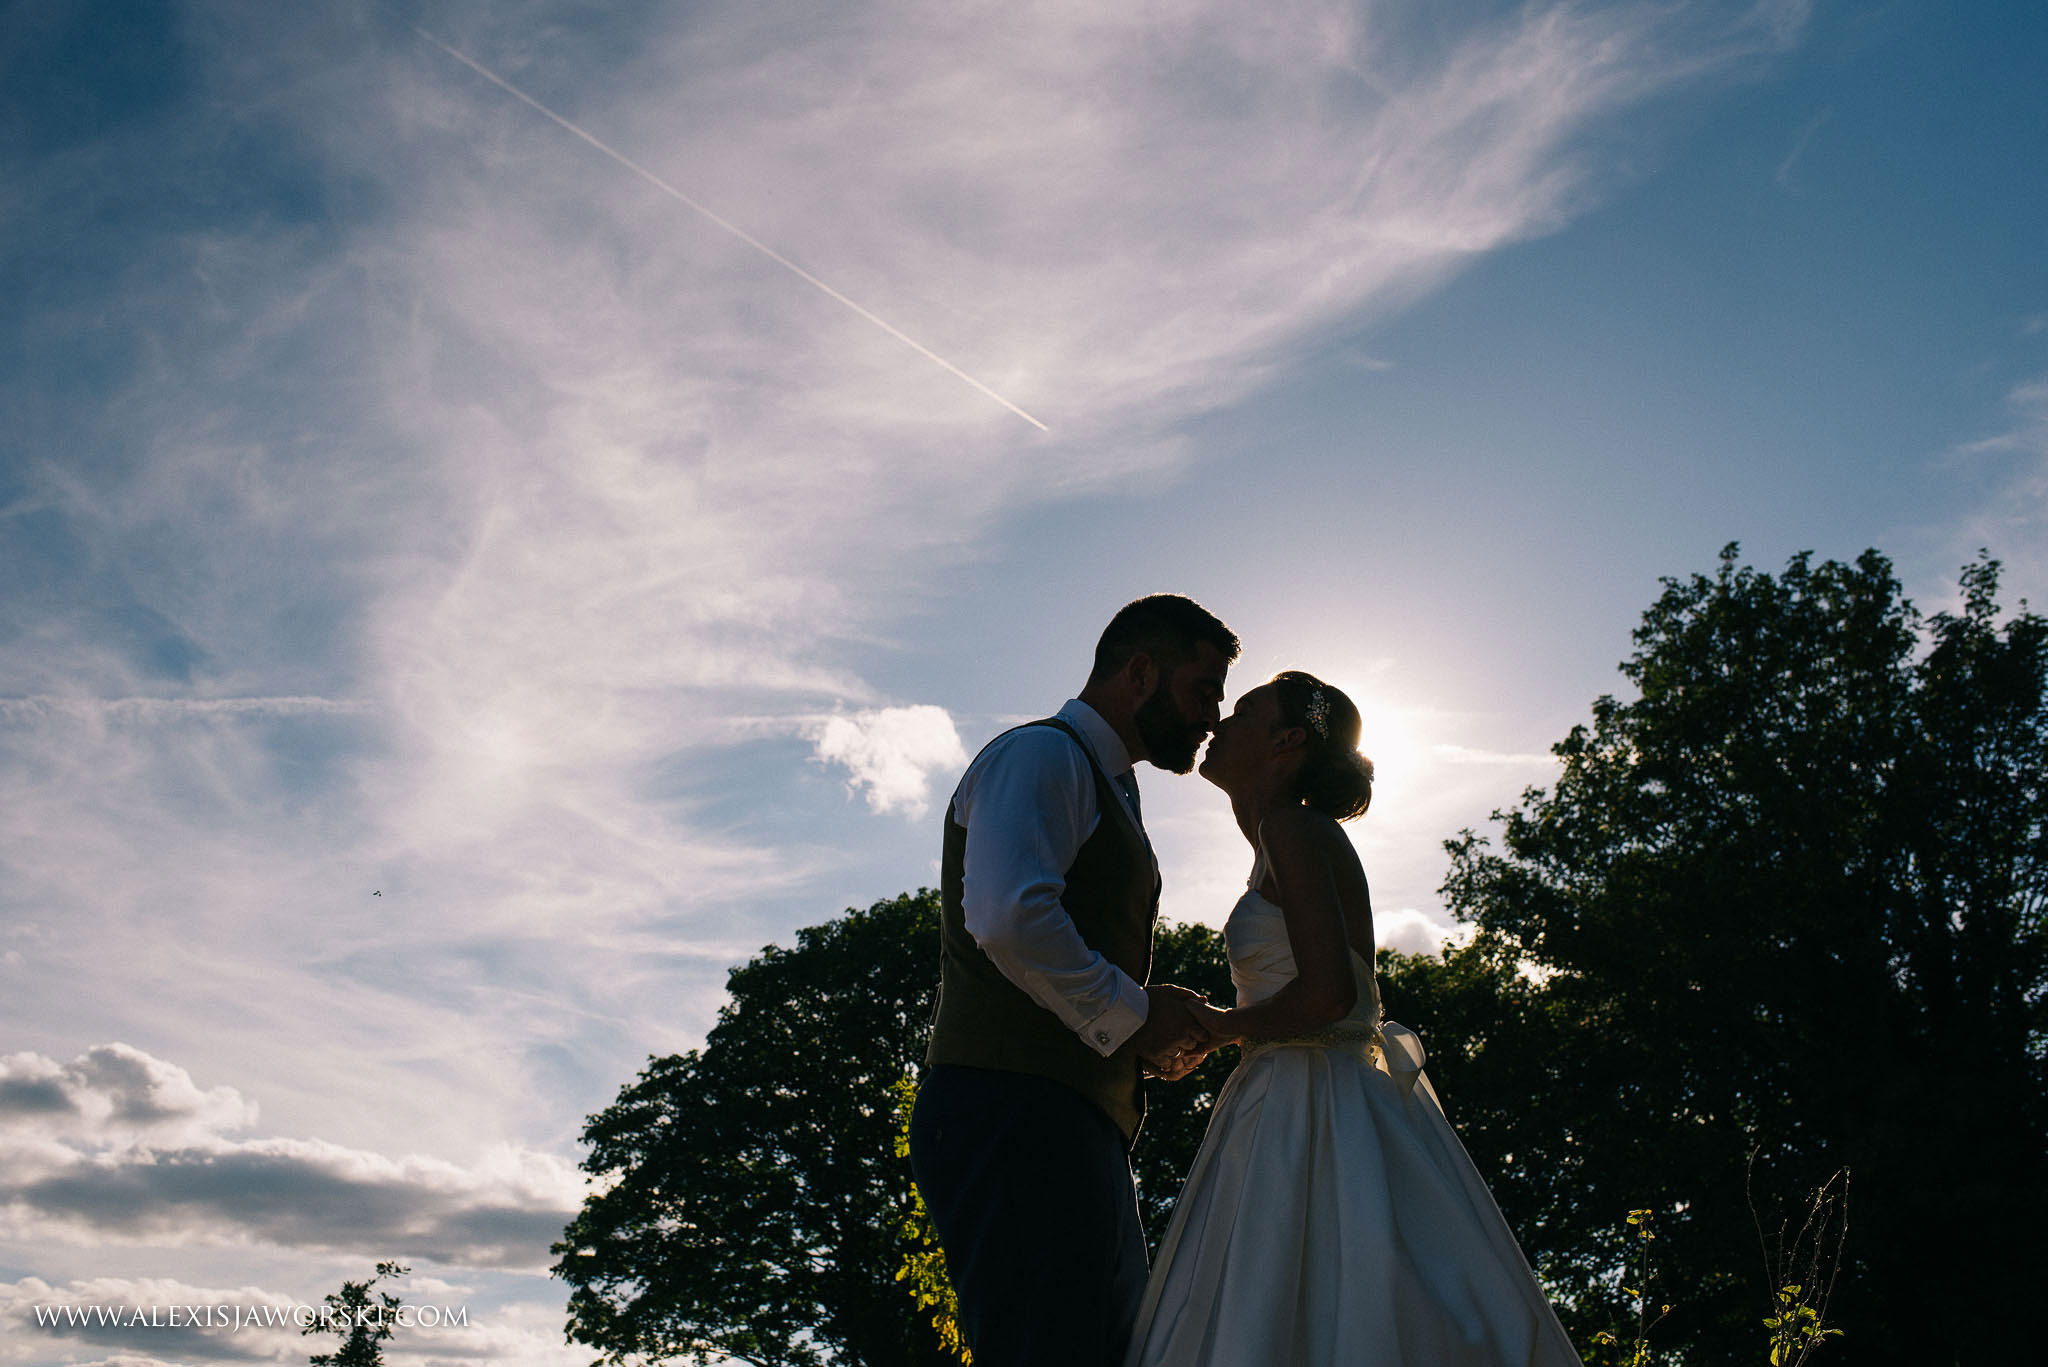 a silhouette portrait of the bride and groom